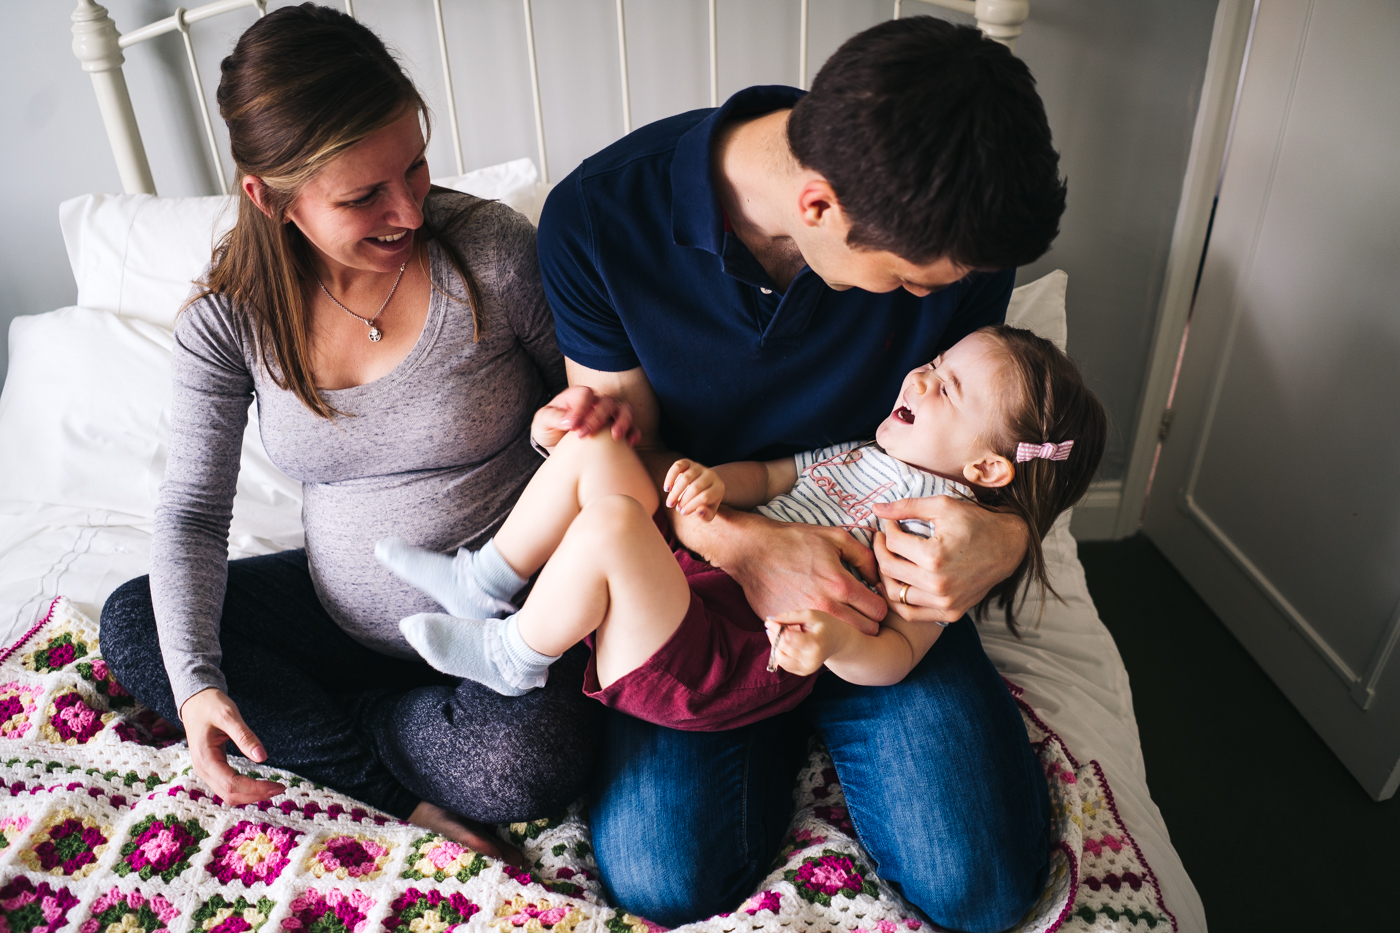 maternity-family-newborn-photography-teesside-stockton-middlesbrough-north-yorkshire-relaxed-0004.jpg